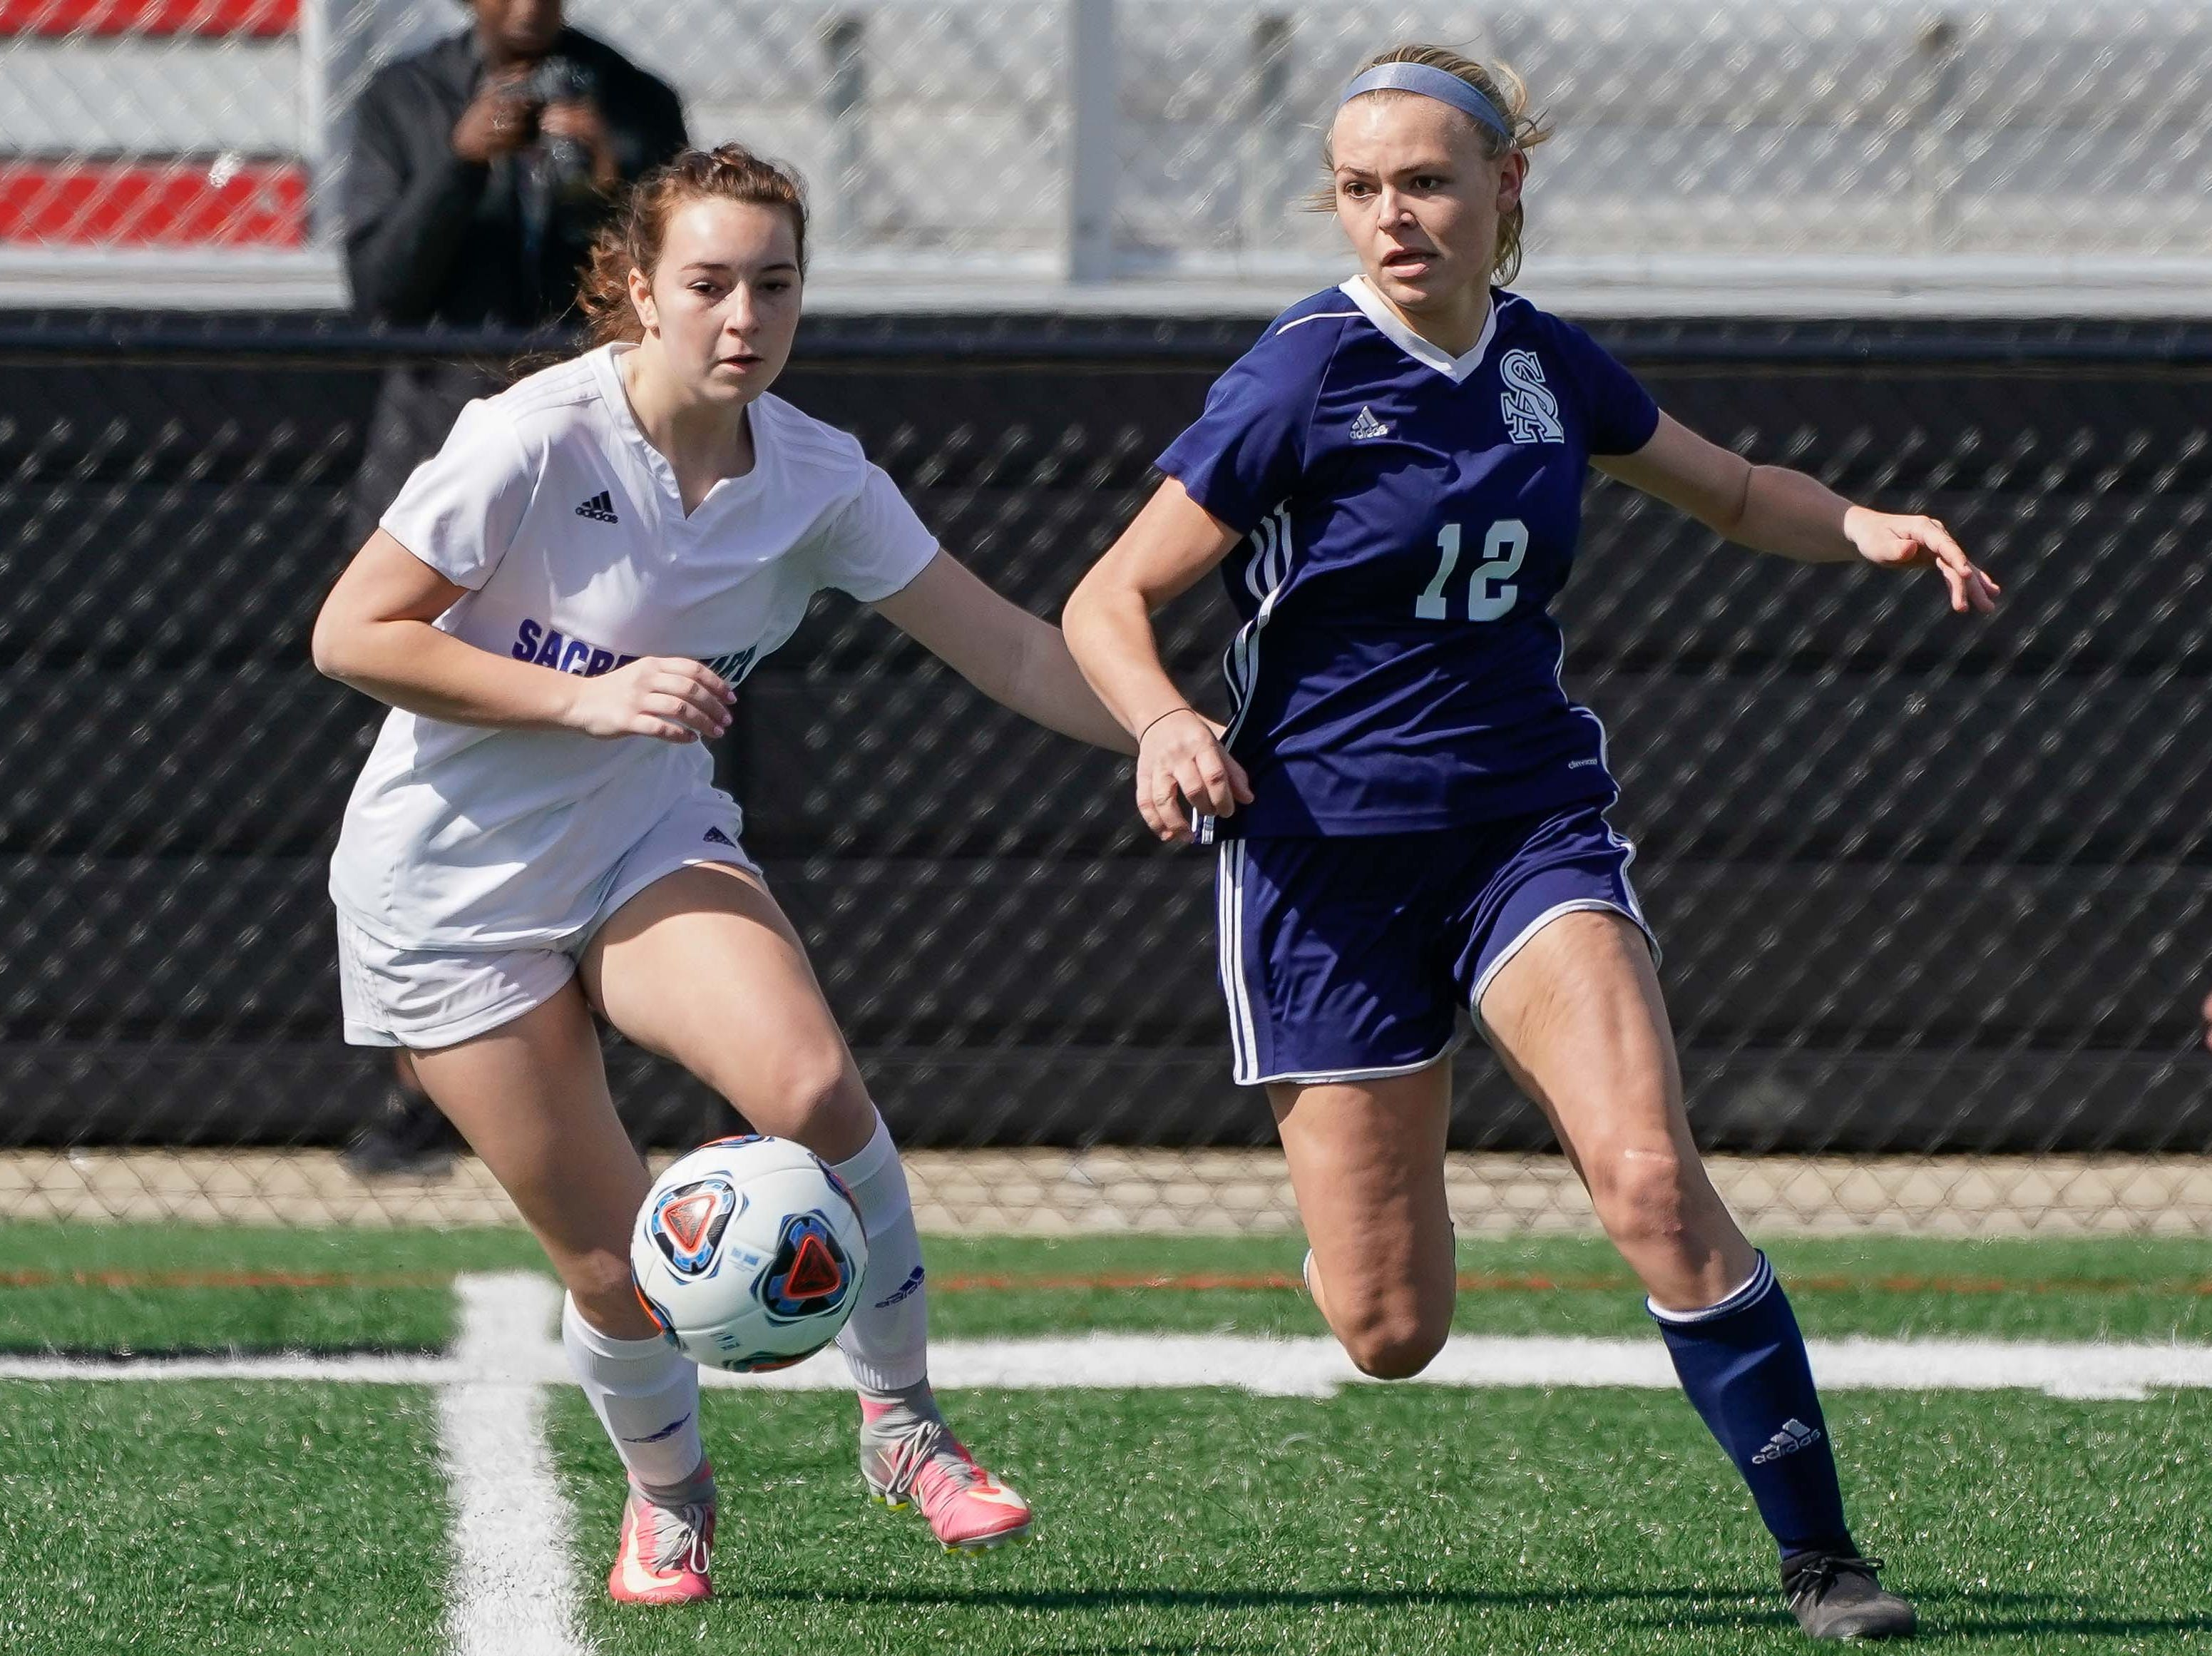 St. Andrew's Samantha Smith (12) Sacred Heart's (10) race for a ball during the MHSAA 1A,2A,3A  GIrls Soccer Championships held at Brandon High School in Brandon, MS, Saturday February 9, 2019.(Bob Smith-For The Clarion Ledger)